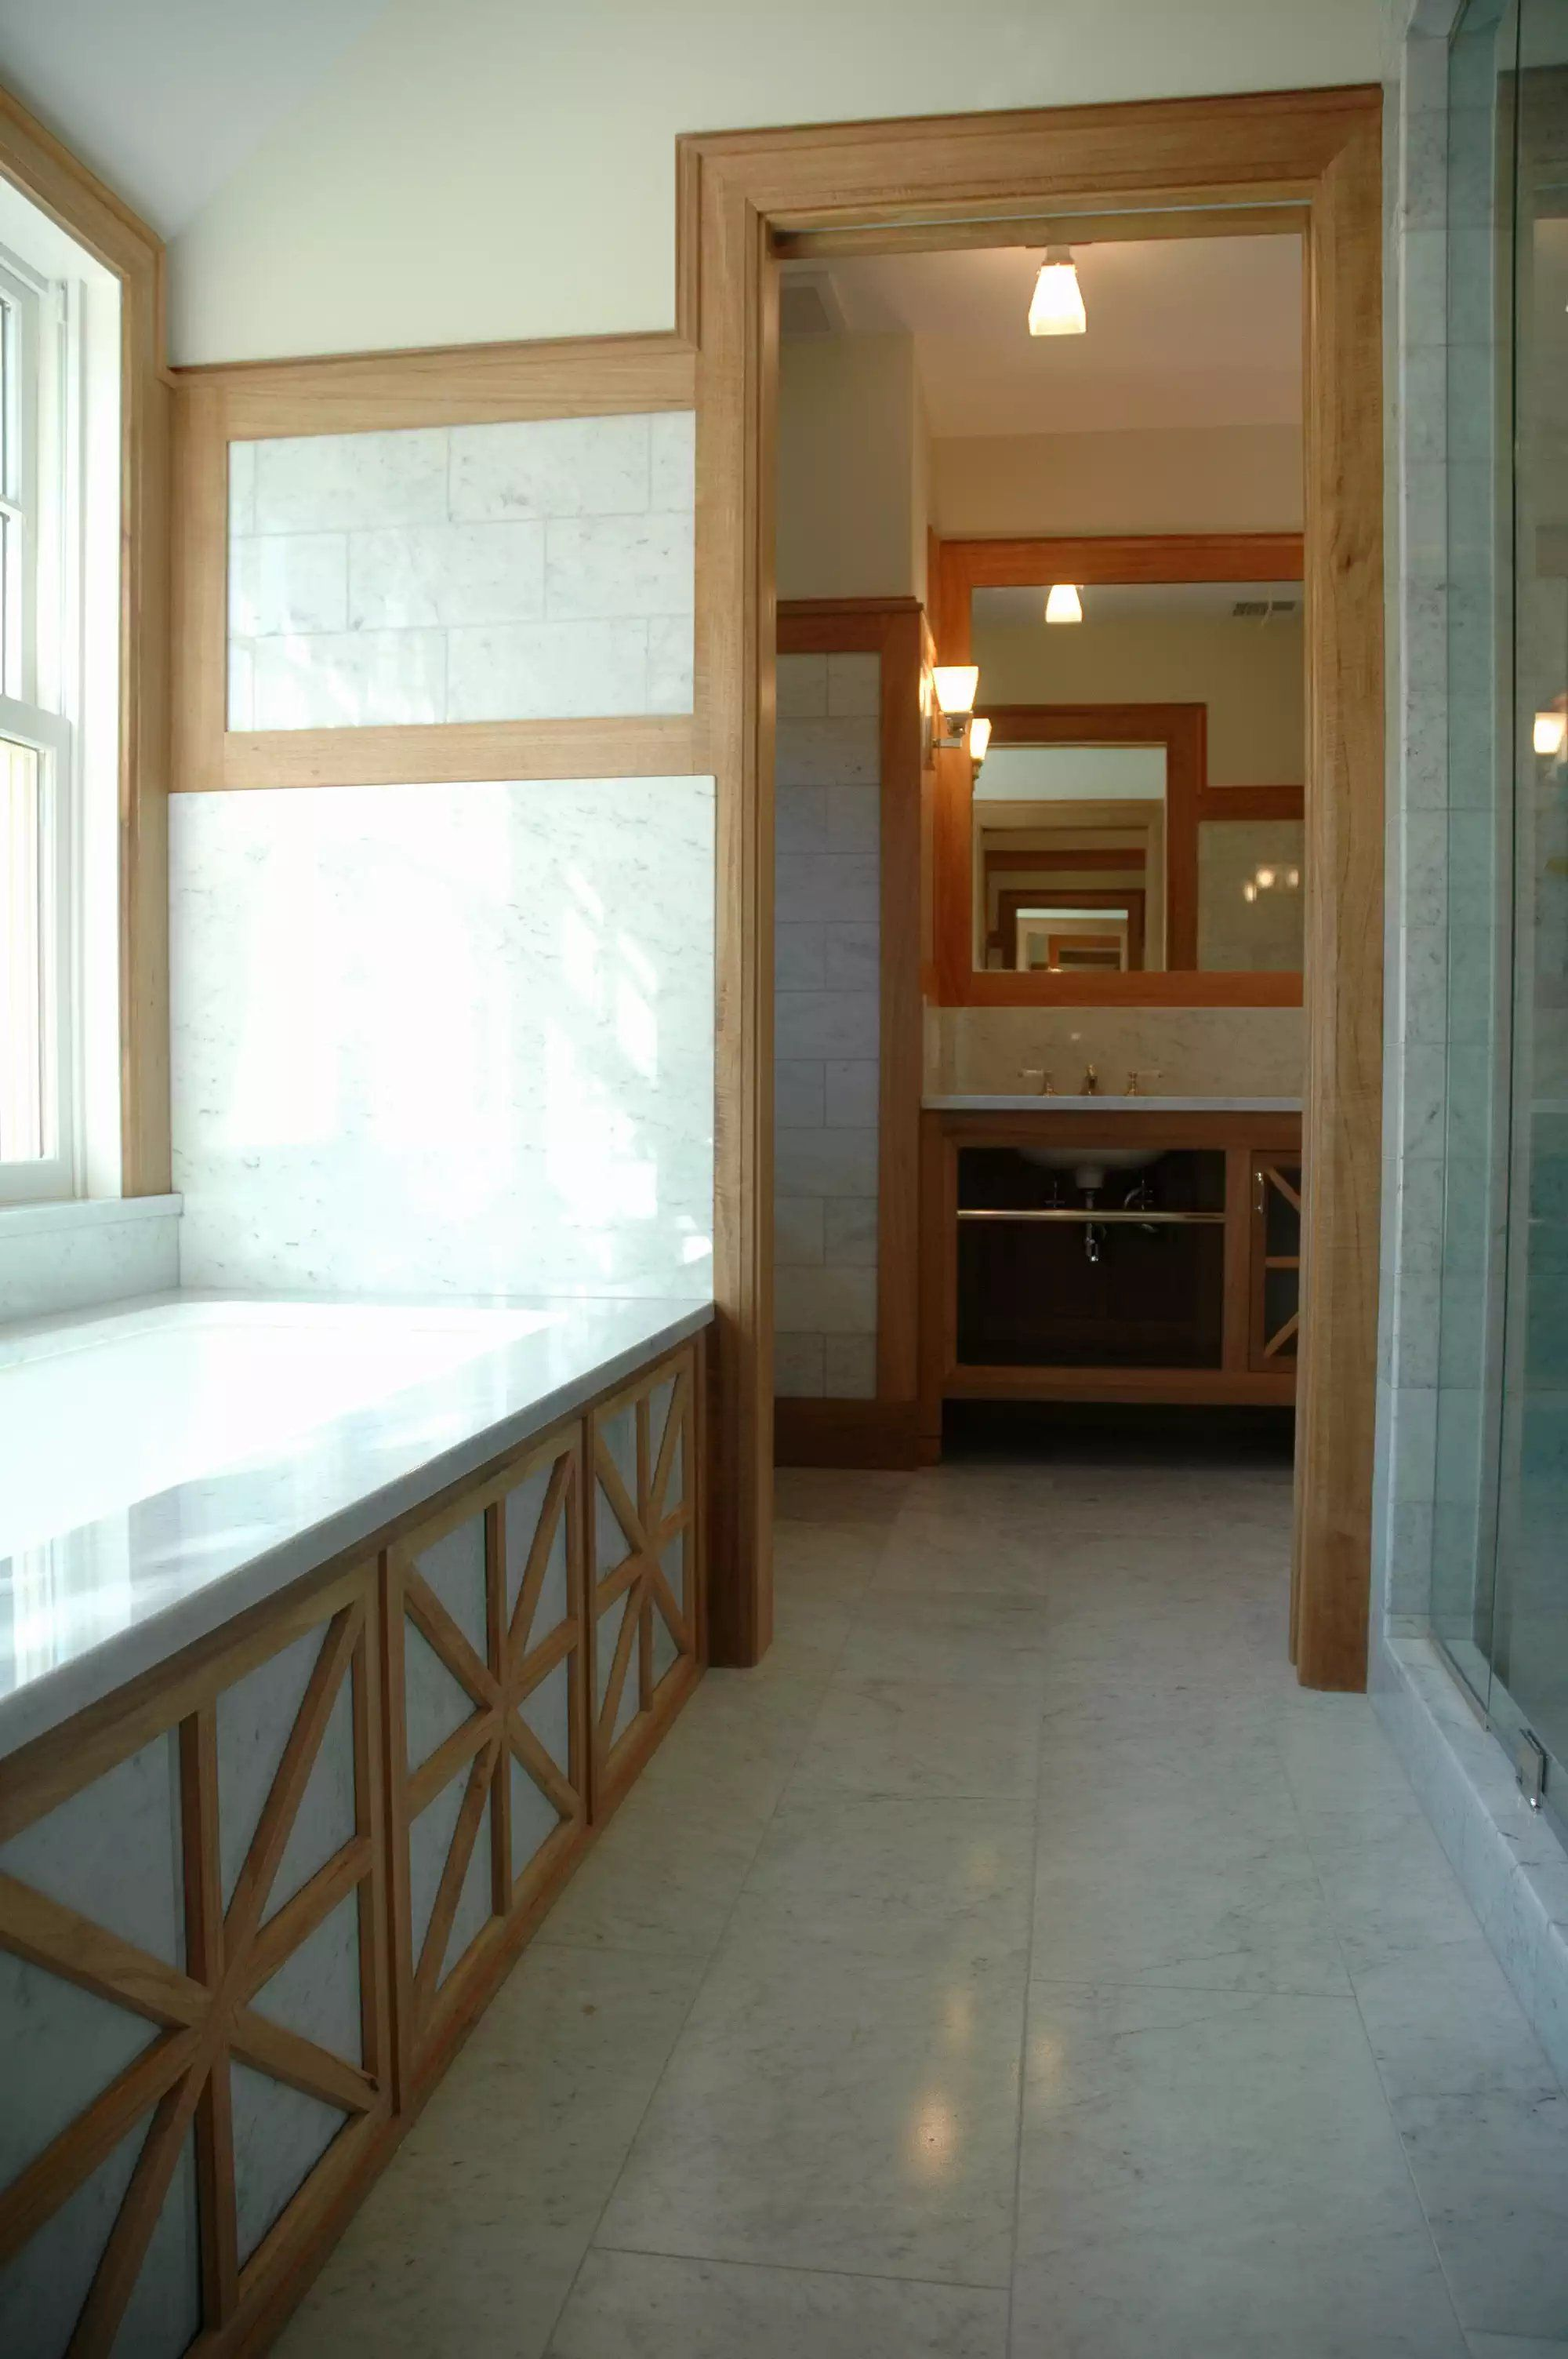 Stained Wood Trim in Bathroom, Detailing on Tub Base | Best of ...